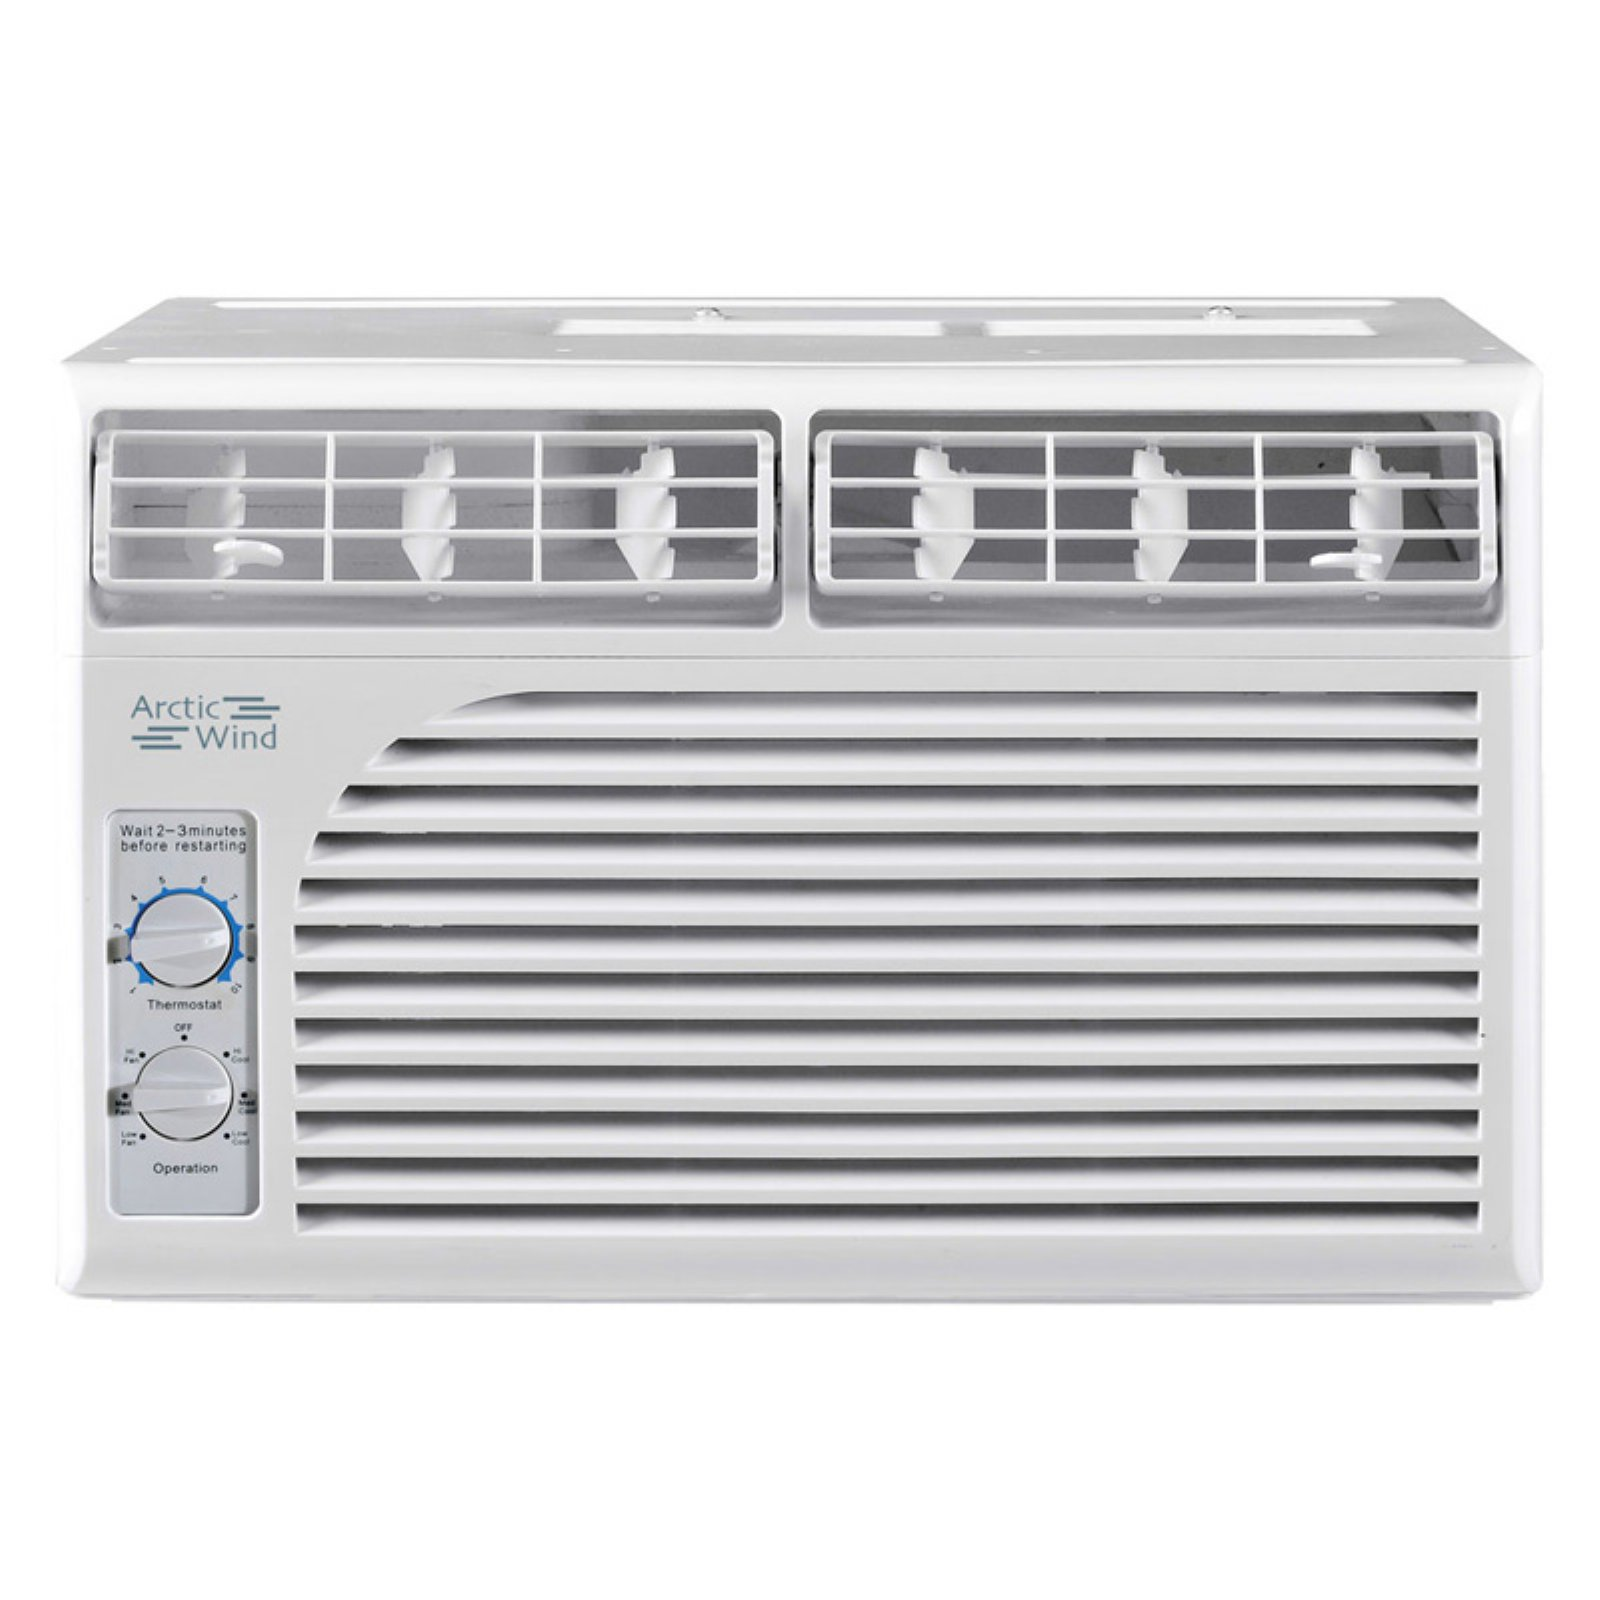 Arctic Wind AW5005M 5,000 BTU Window Air Conditioner with Mechanical Controls